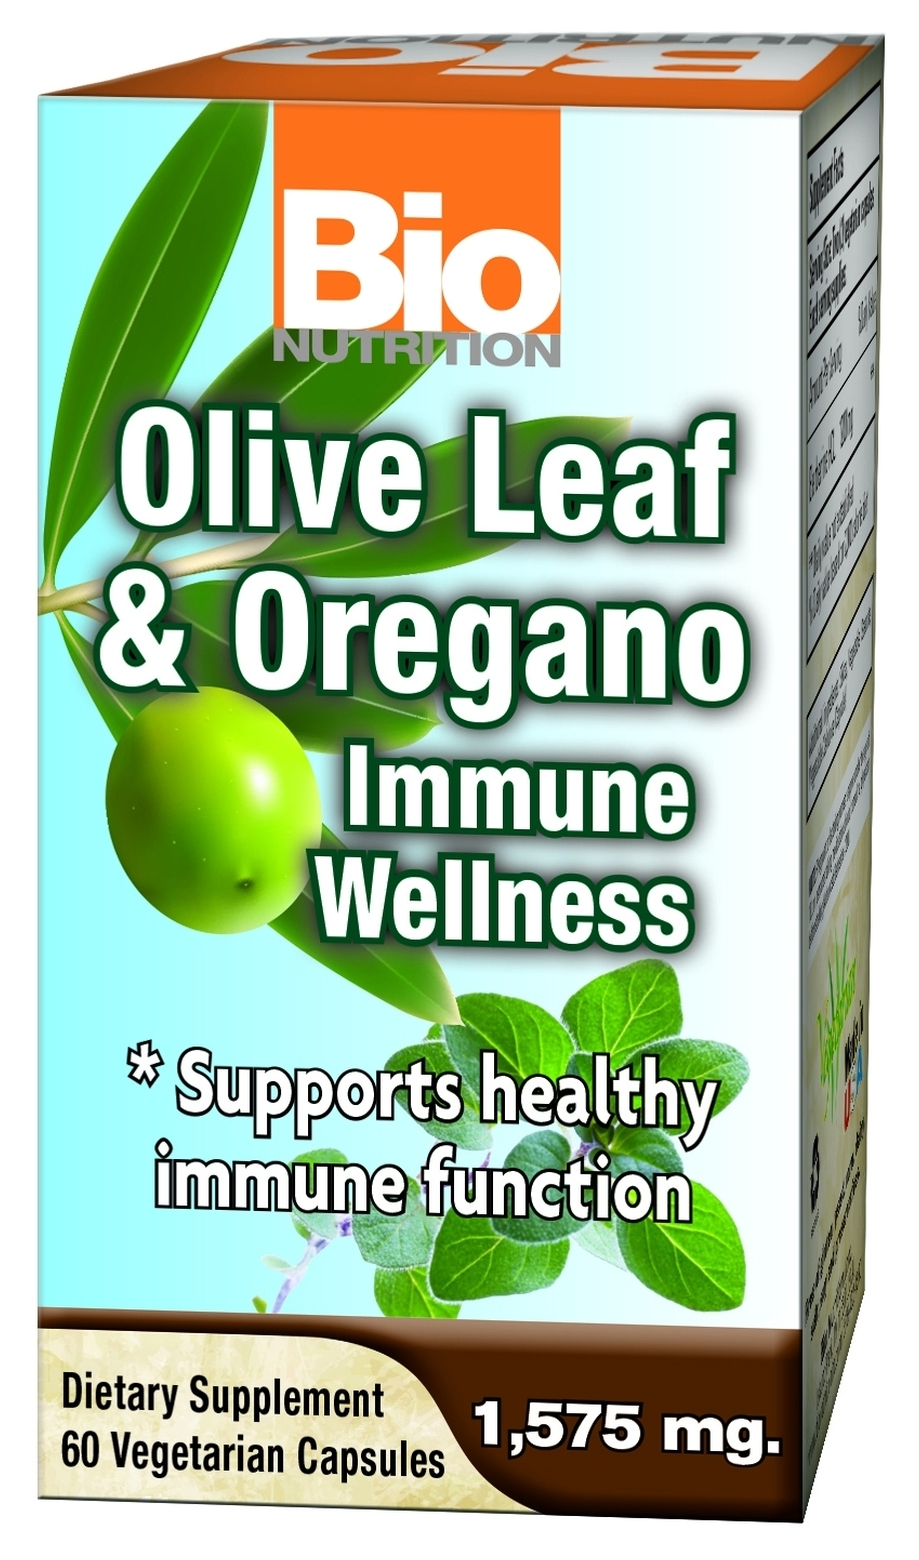 Olive Leaf & Oregano Immune Wellness 60 Vegetarian caps by Bio Nutrition